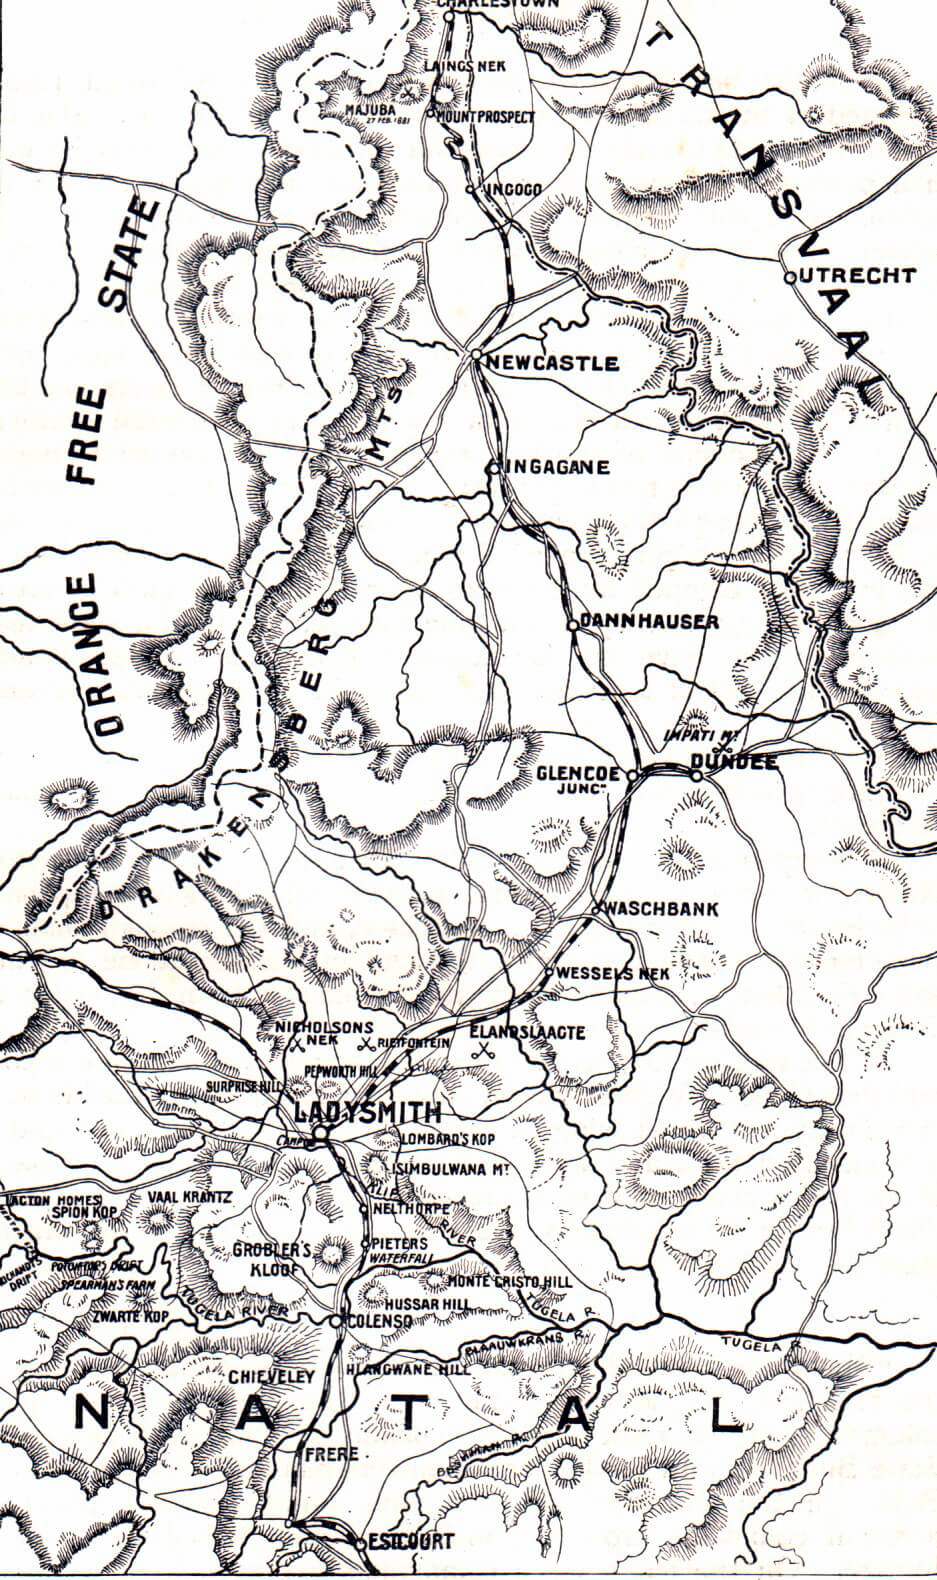 Map of Natal in 1889 on the outbreak of the South African or Boer War